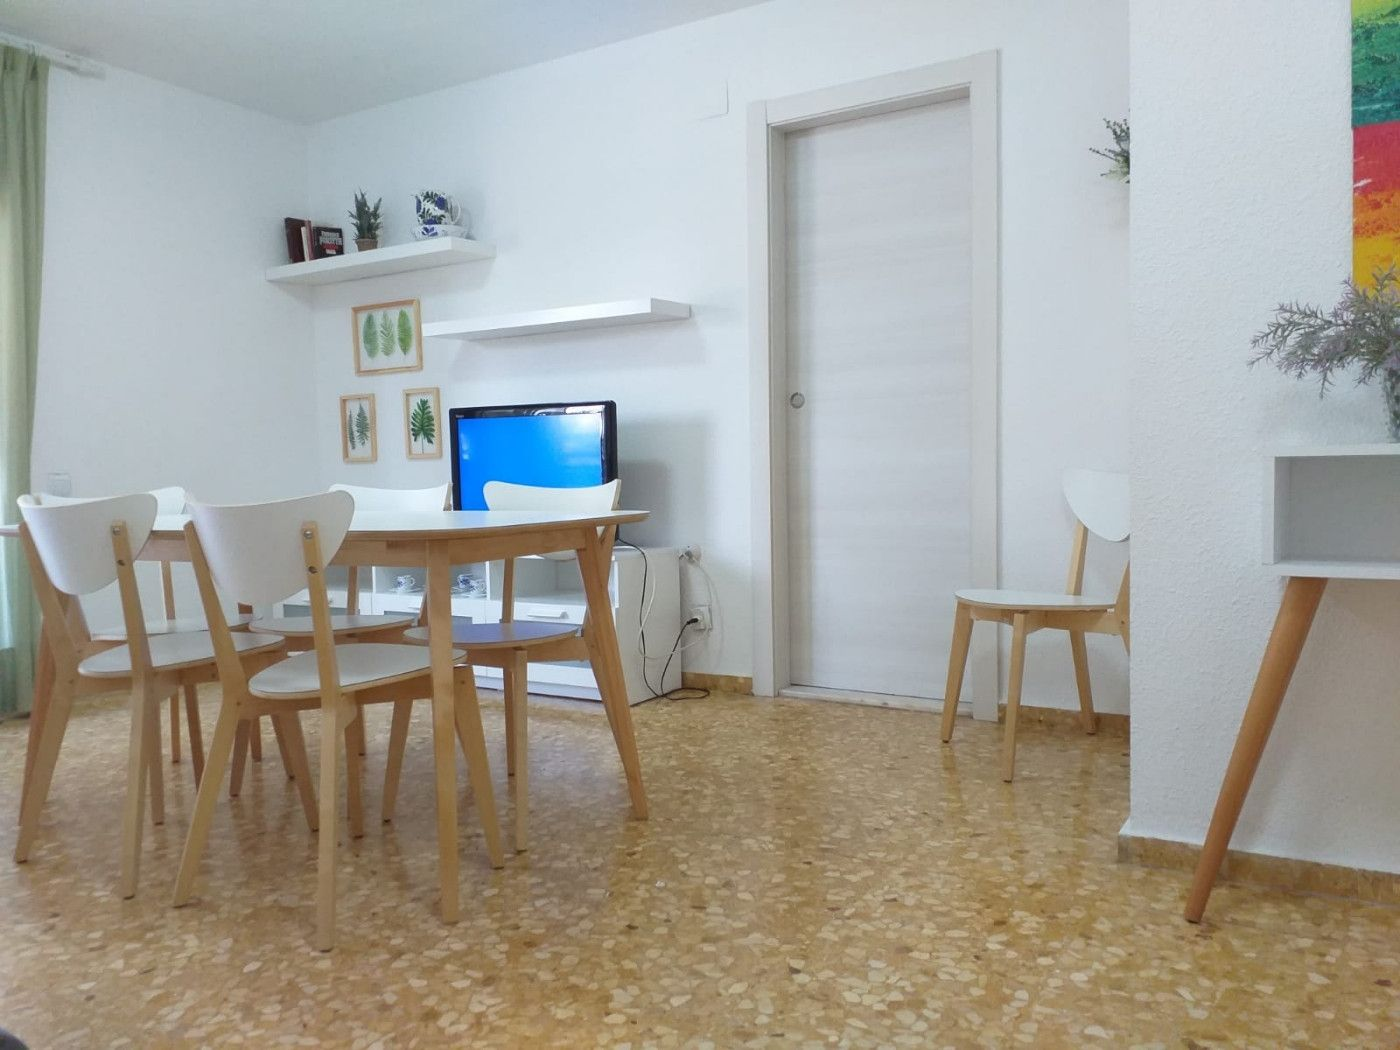 Apartament  Playa el puig. Oportunidad